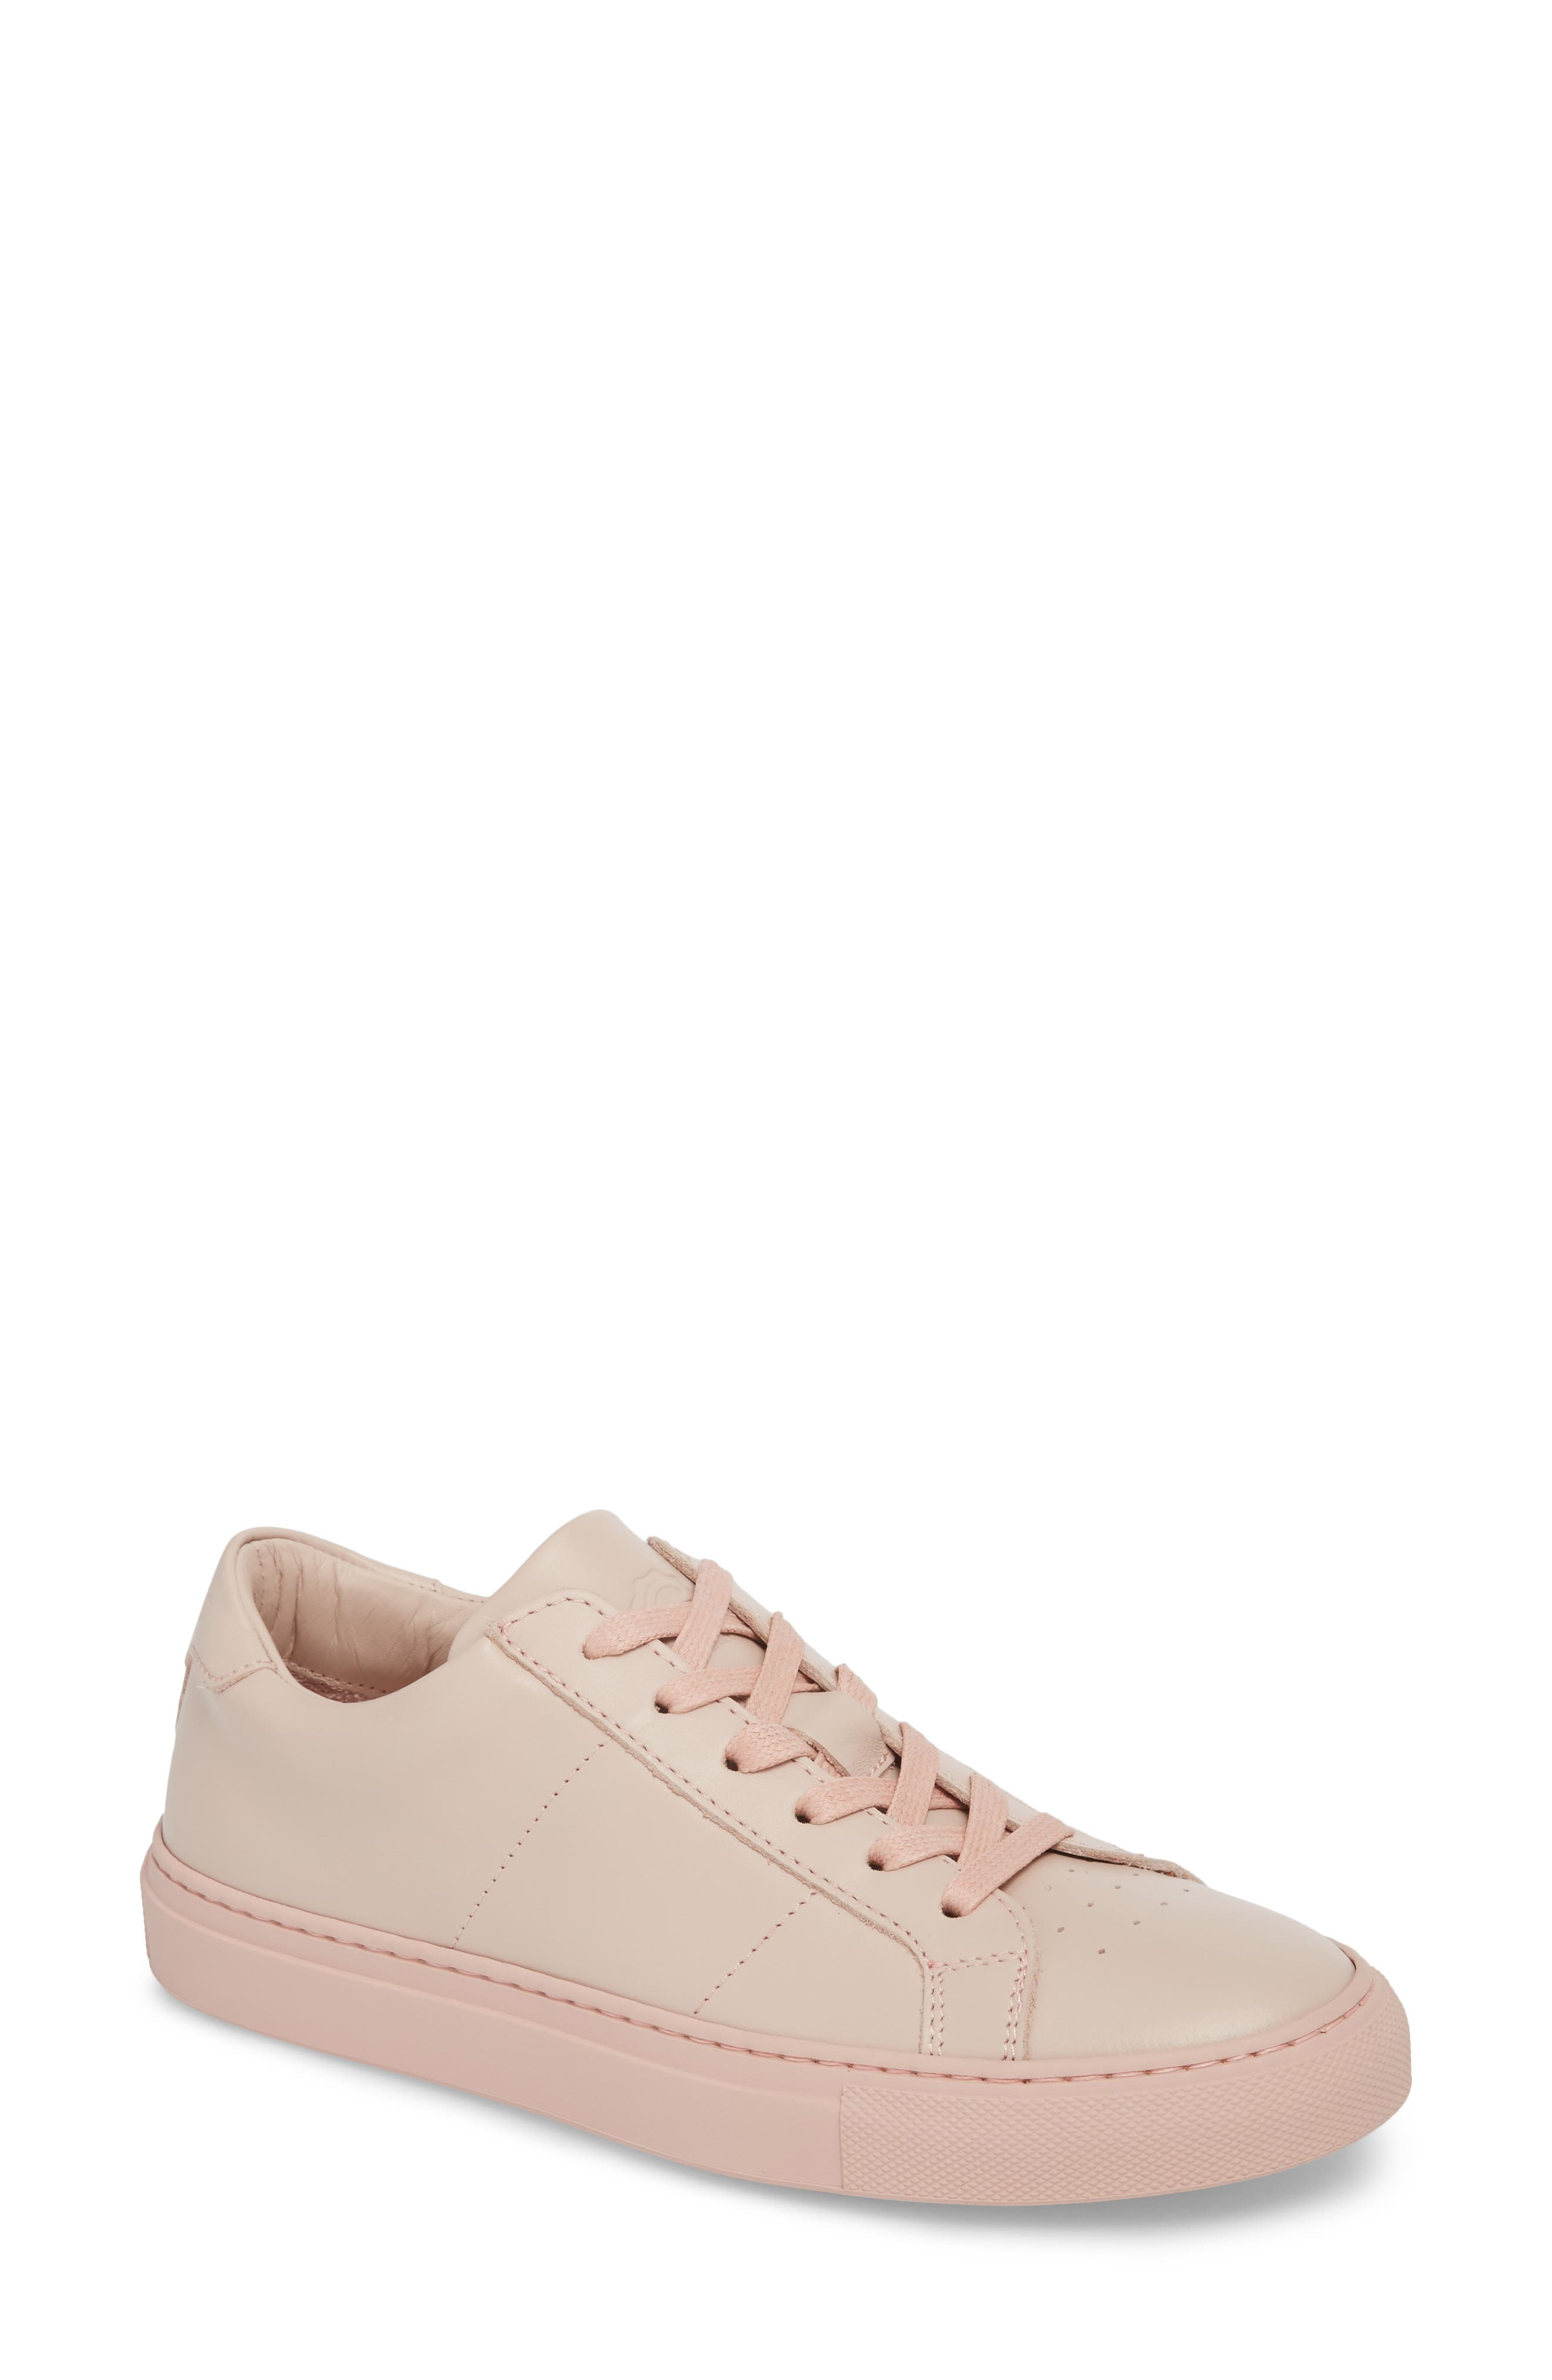 Greats Royale Low Top Sneaker (Women)